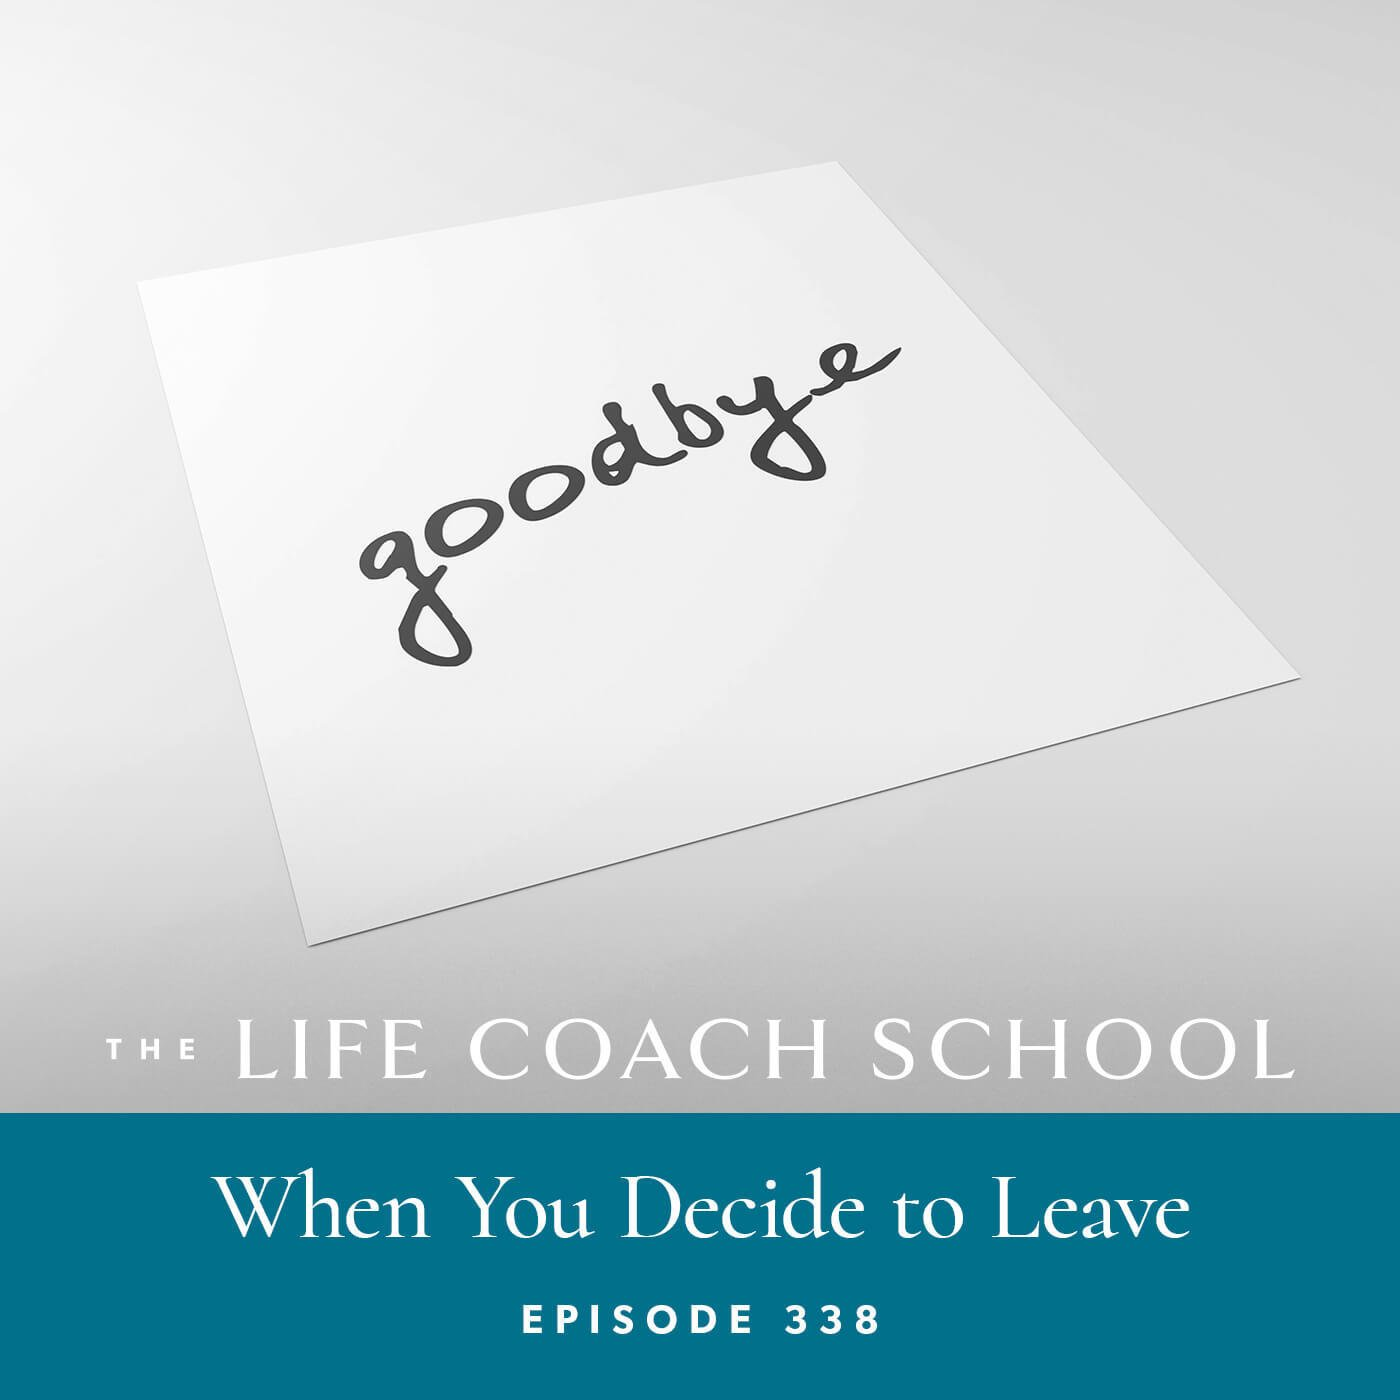 The Life Coach School Podcast with Brooke Castillo | Episode 338 | When You Decide to Leave